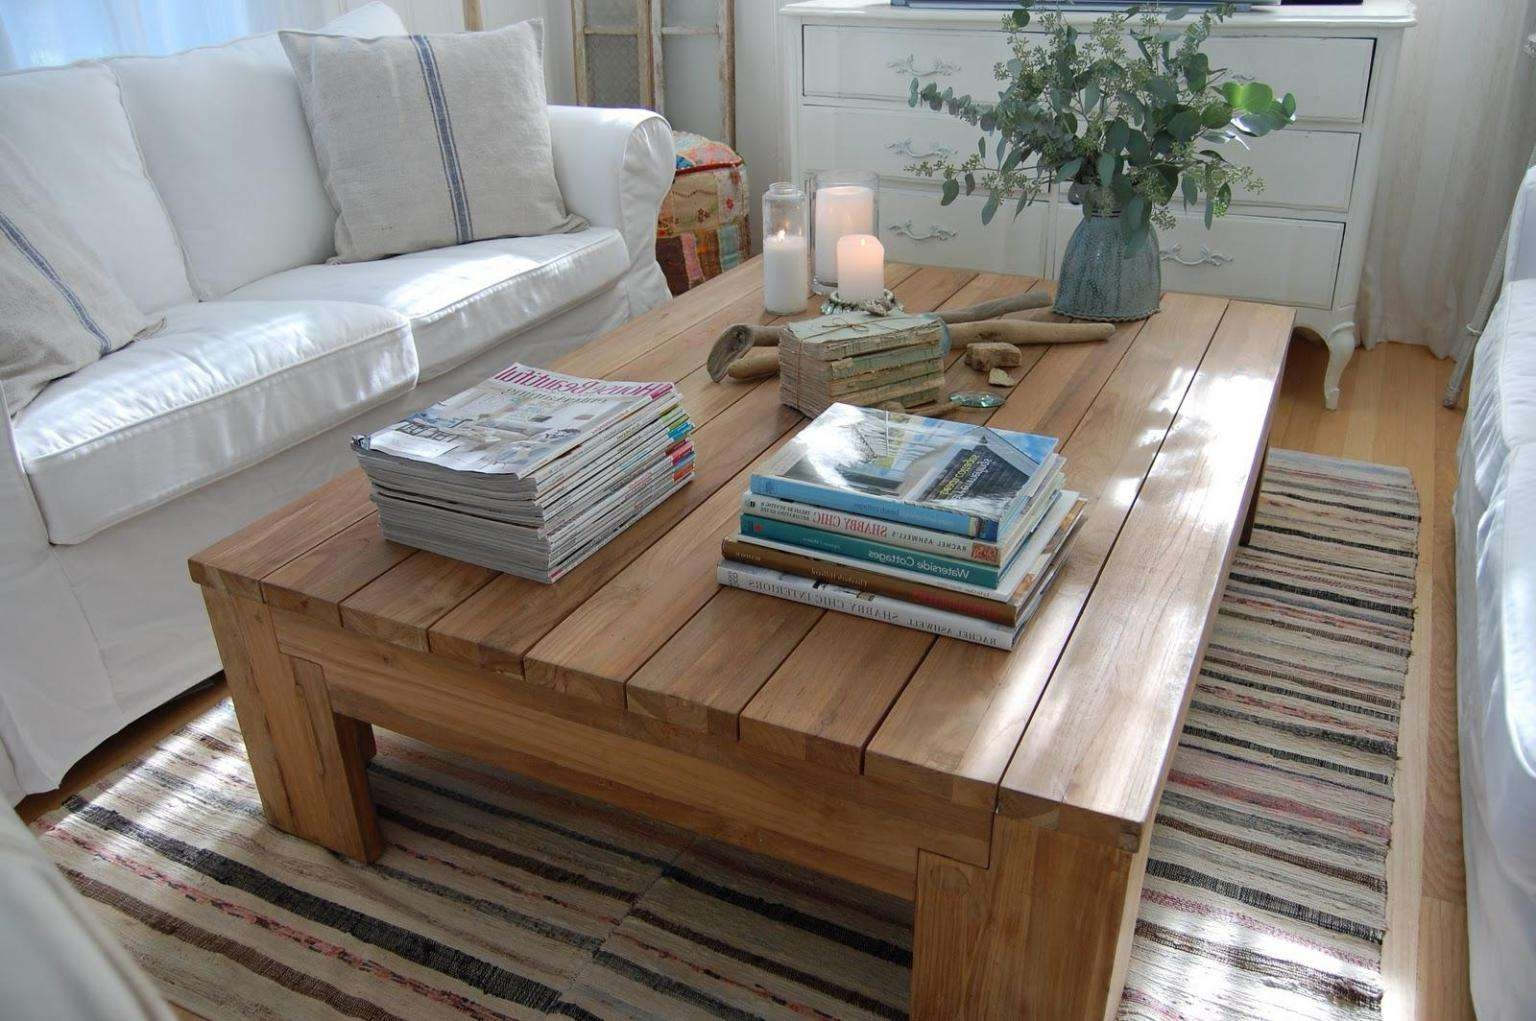 Fashionable Rustic Storage Diy Coffee Tables Intended For Coffee Tables : Mesmerizing Modern Coffee Table Plans Diy Rustic (View 12 of 20)